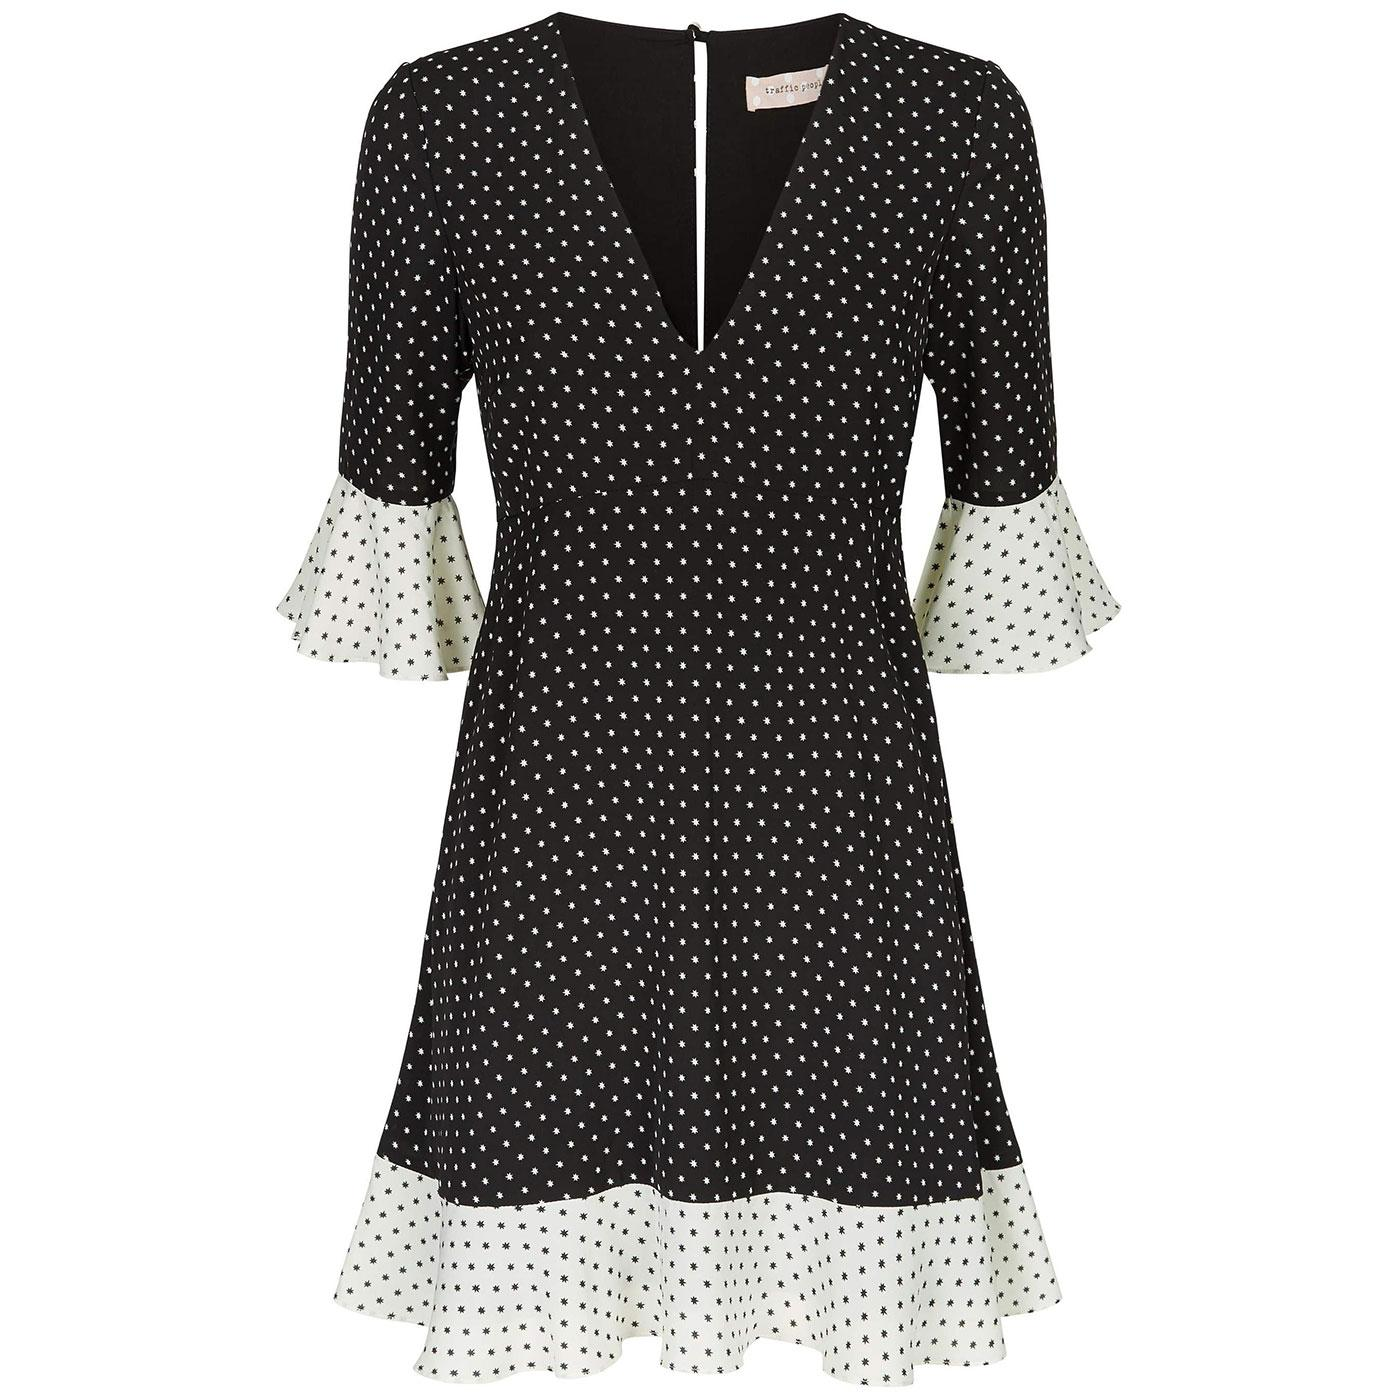 Frill TRAFFIC PEOPLE Star Print Retro Mini Dress